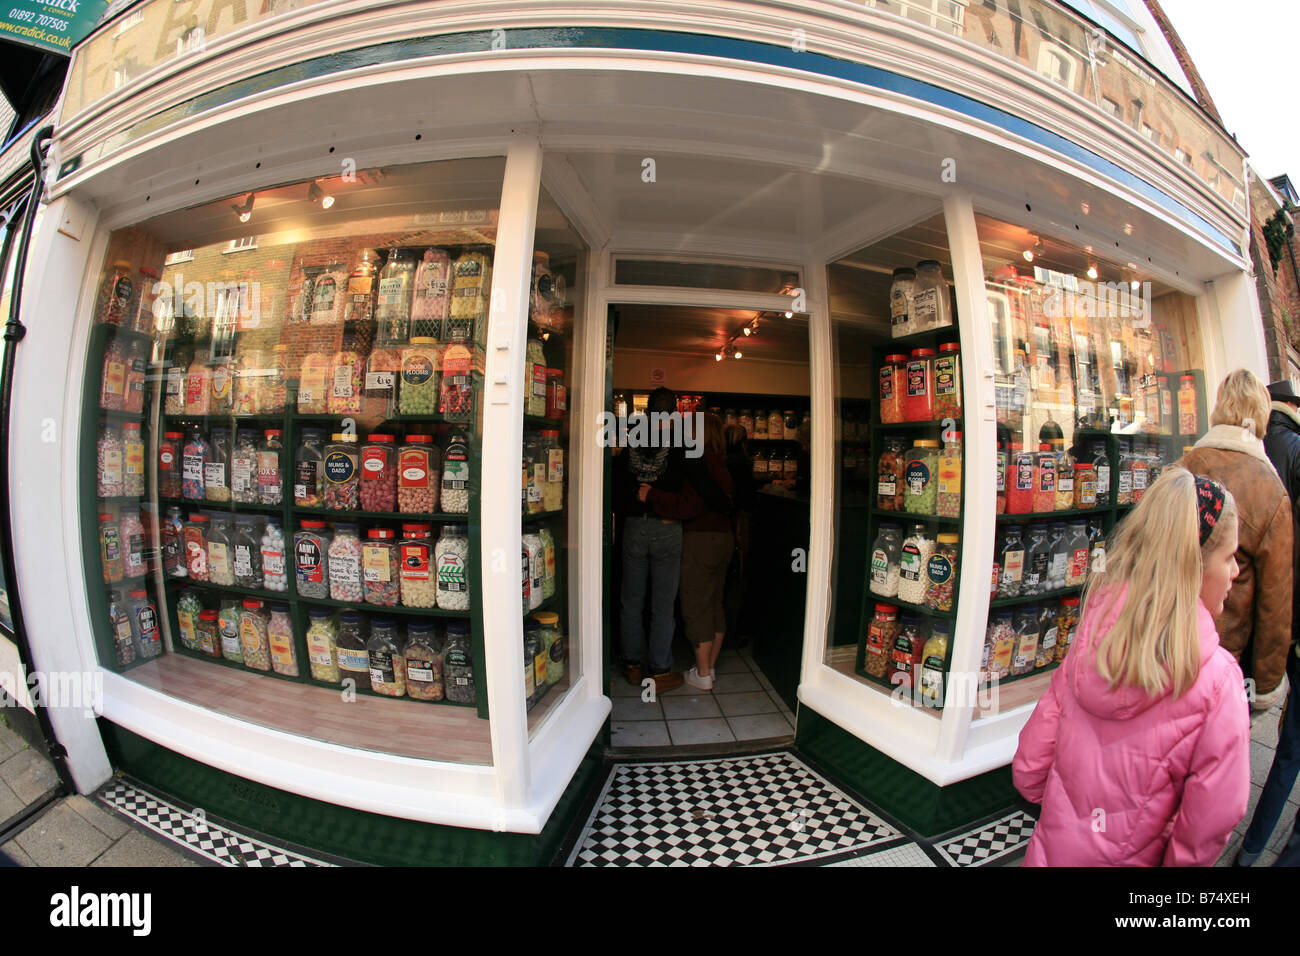 A Classic English sweetshop Britcher & Rivers Ltd ,109 High Street, Rye, East Sussex - Stock Image